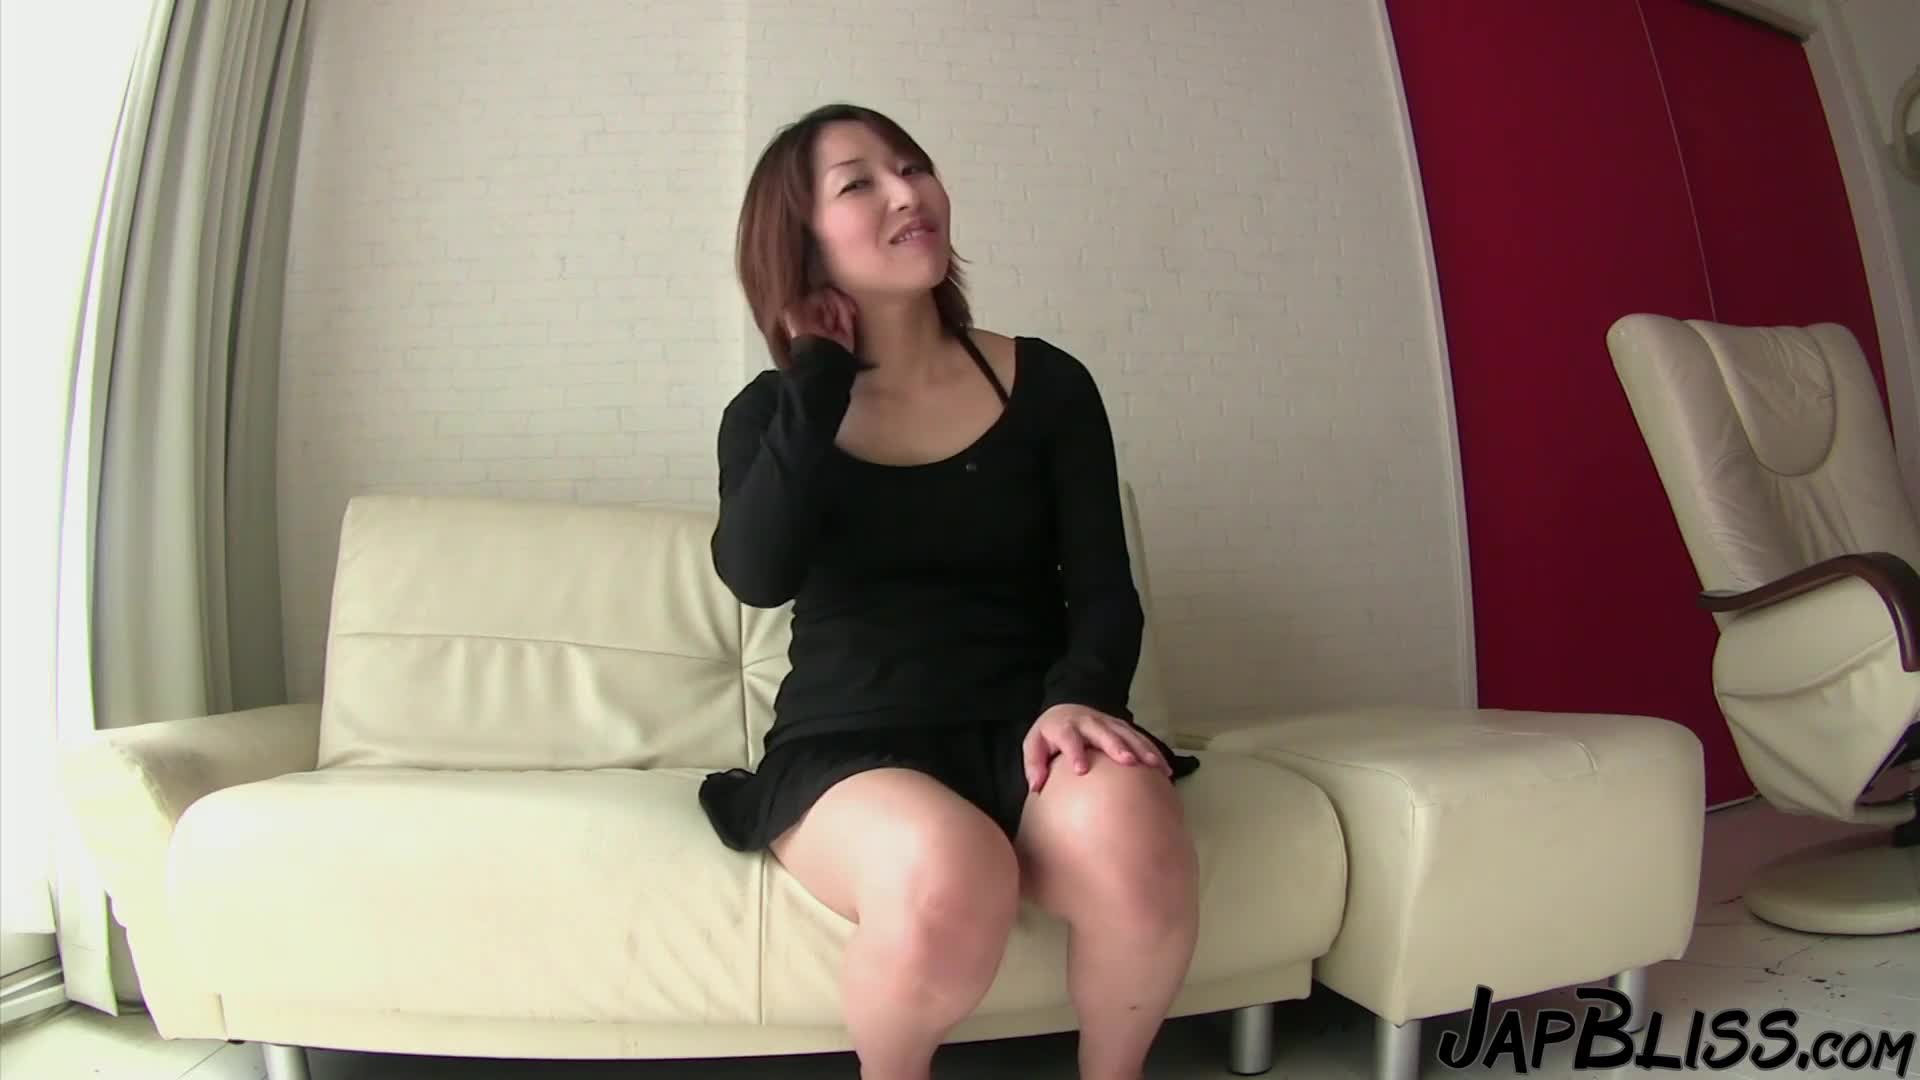 Hairy Amateur From Tokyo, Japan-59247221